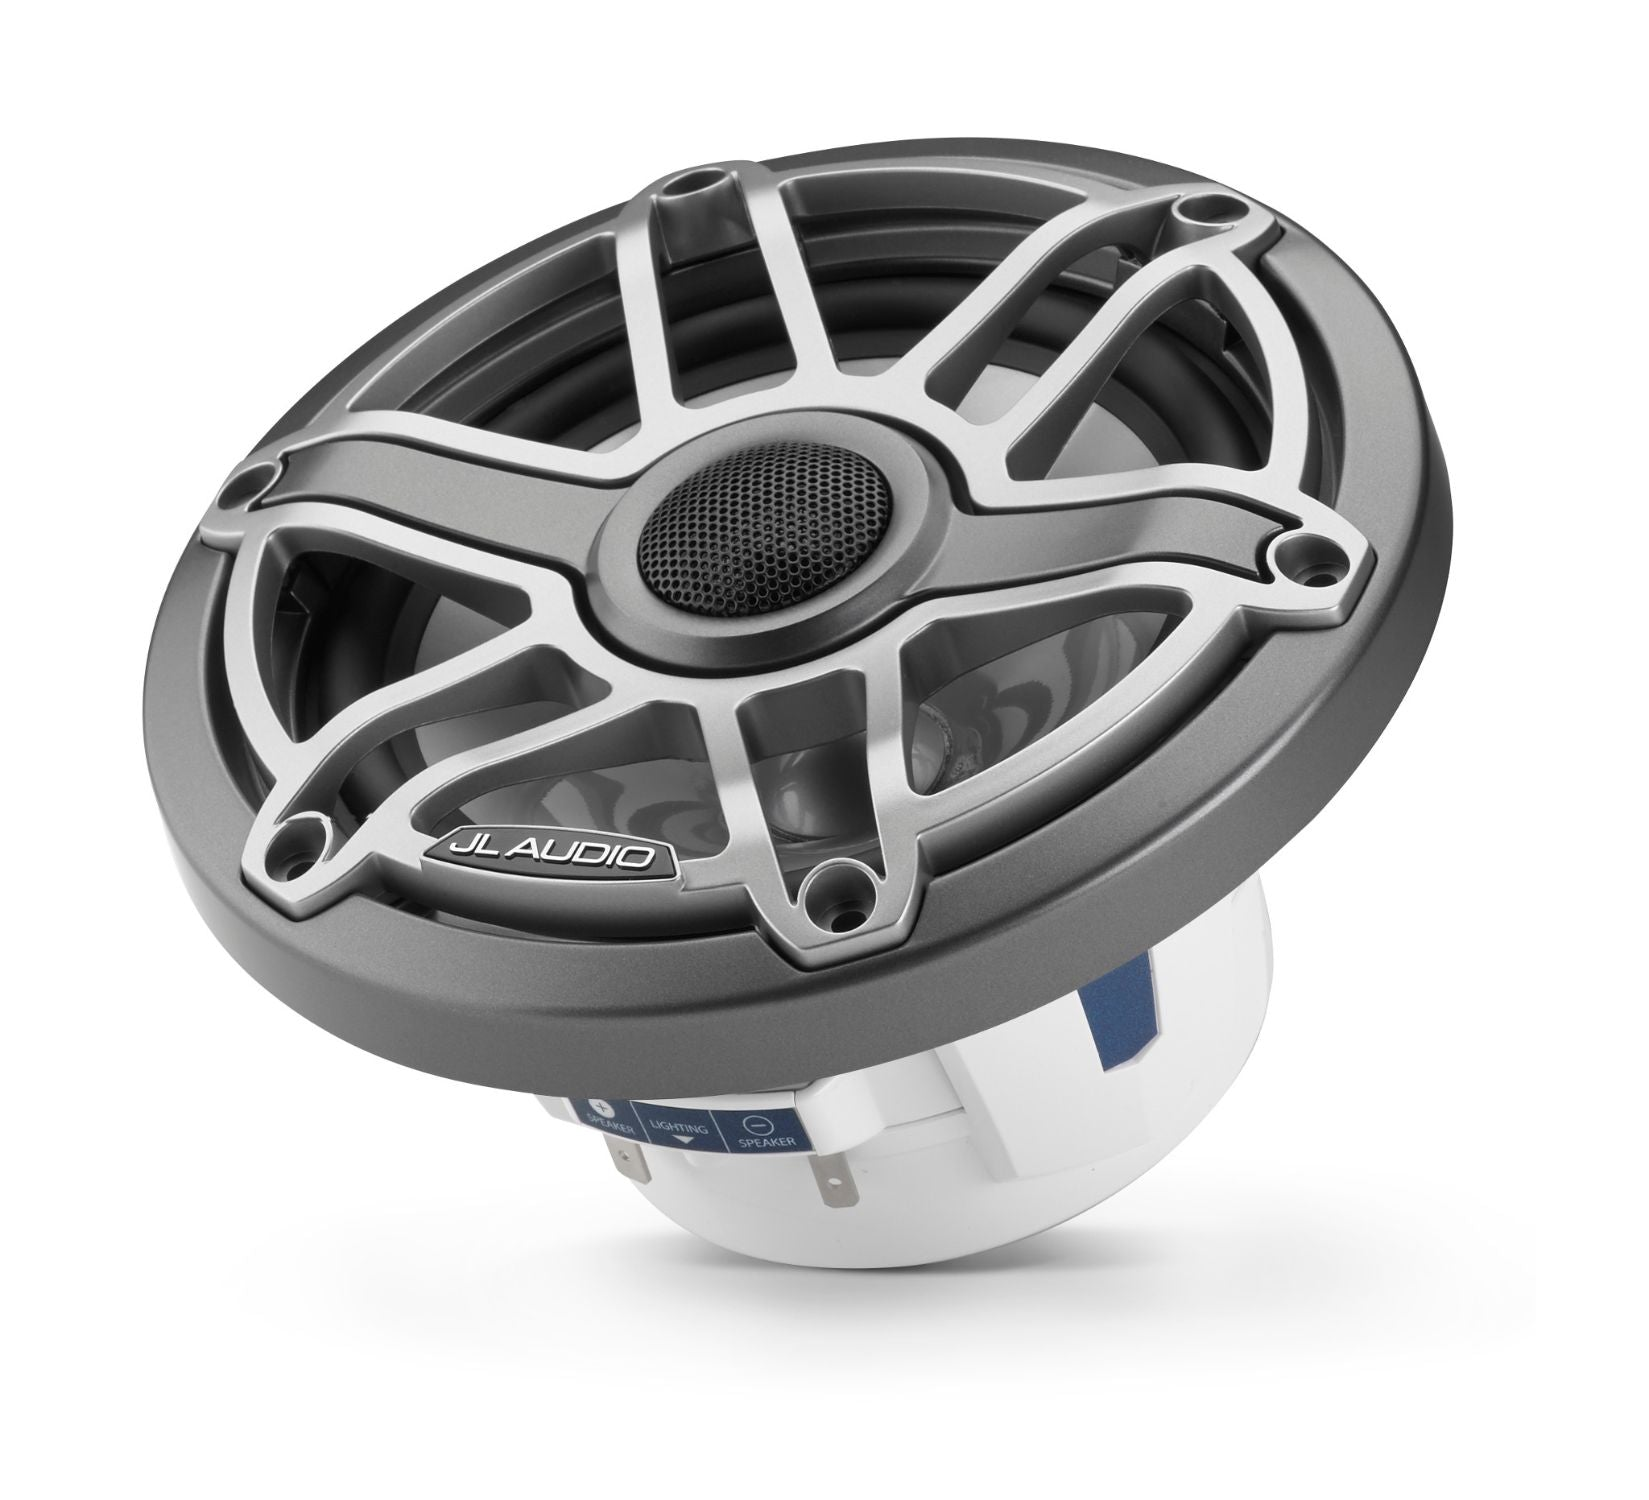 M6-650X-S-GmTi-i Coaxial Speaker Tilted